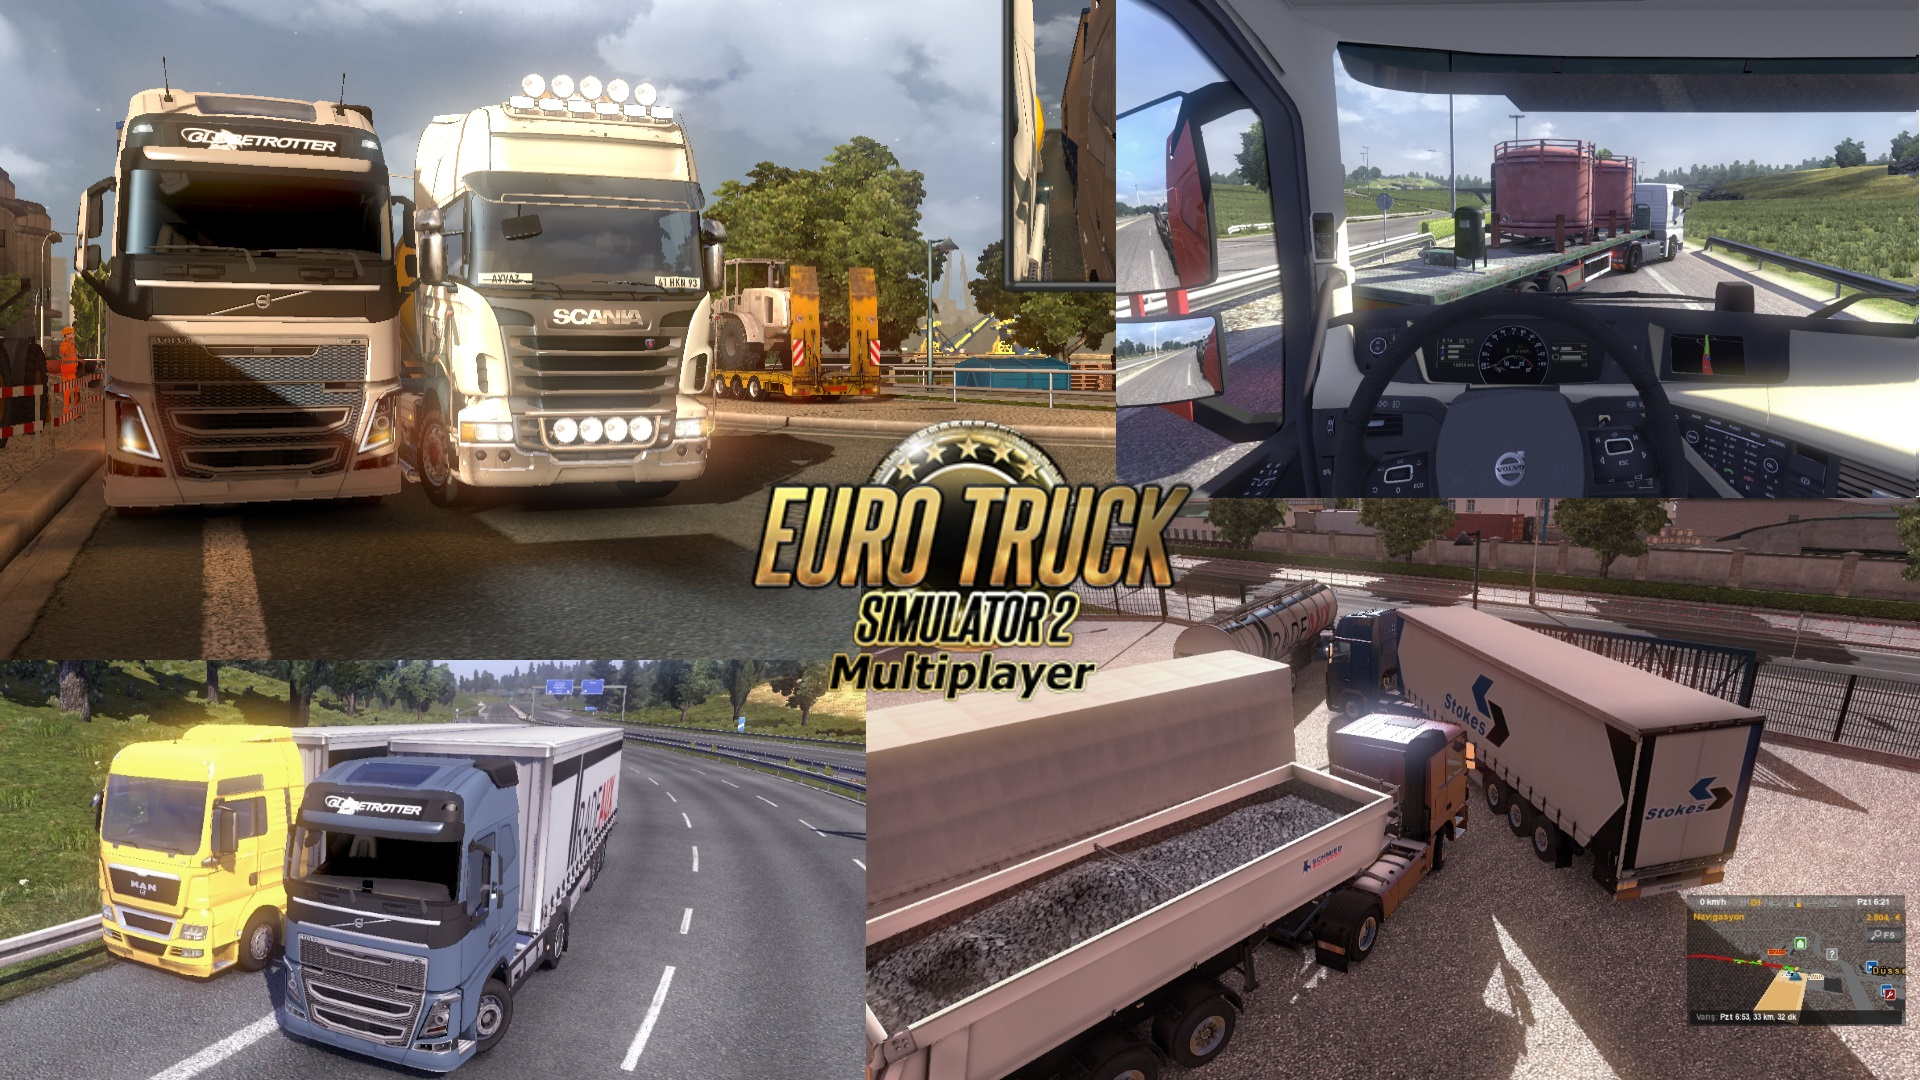 euro truck simulator 2 multiplayer mods. Black Bedroom Furniture Sets. Home Design Ideas